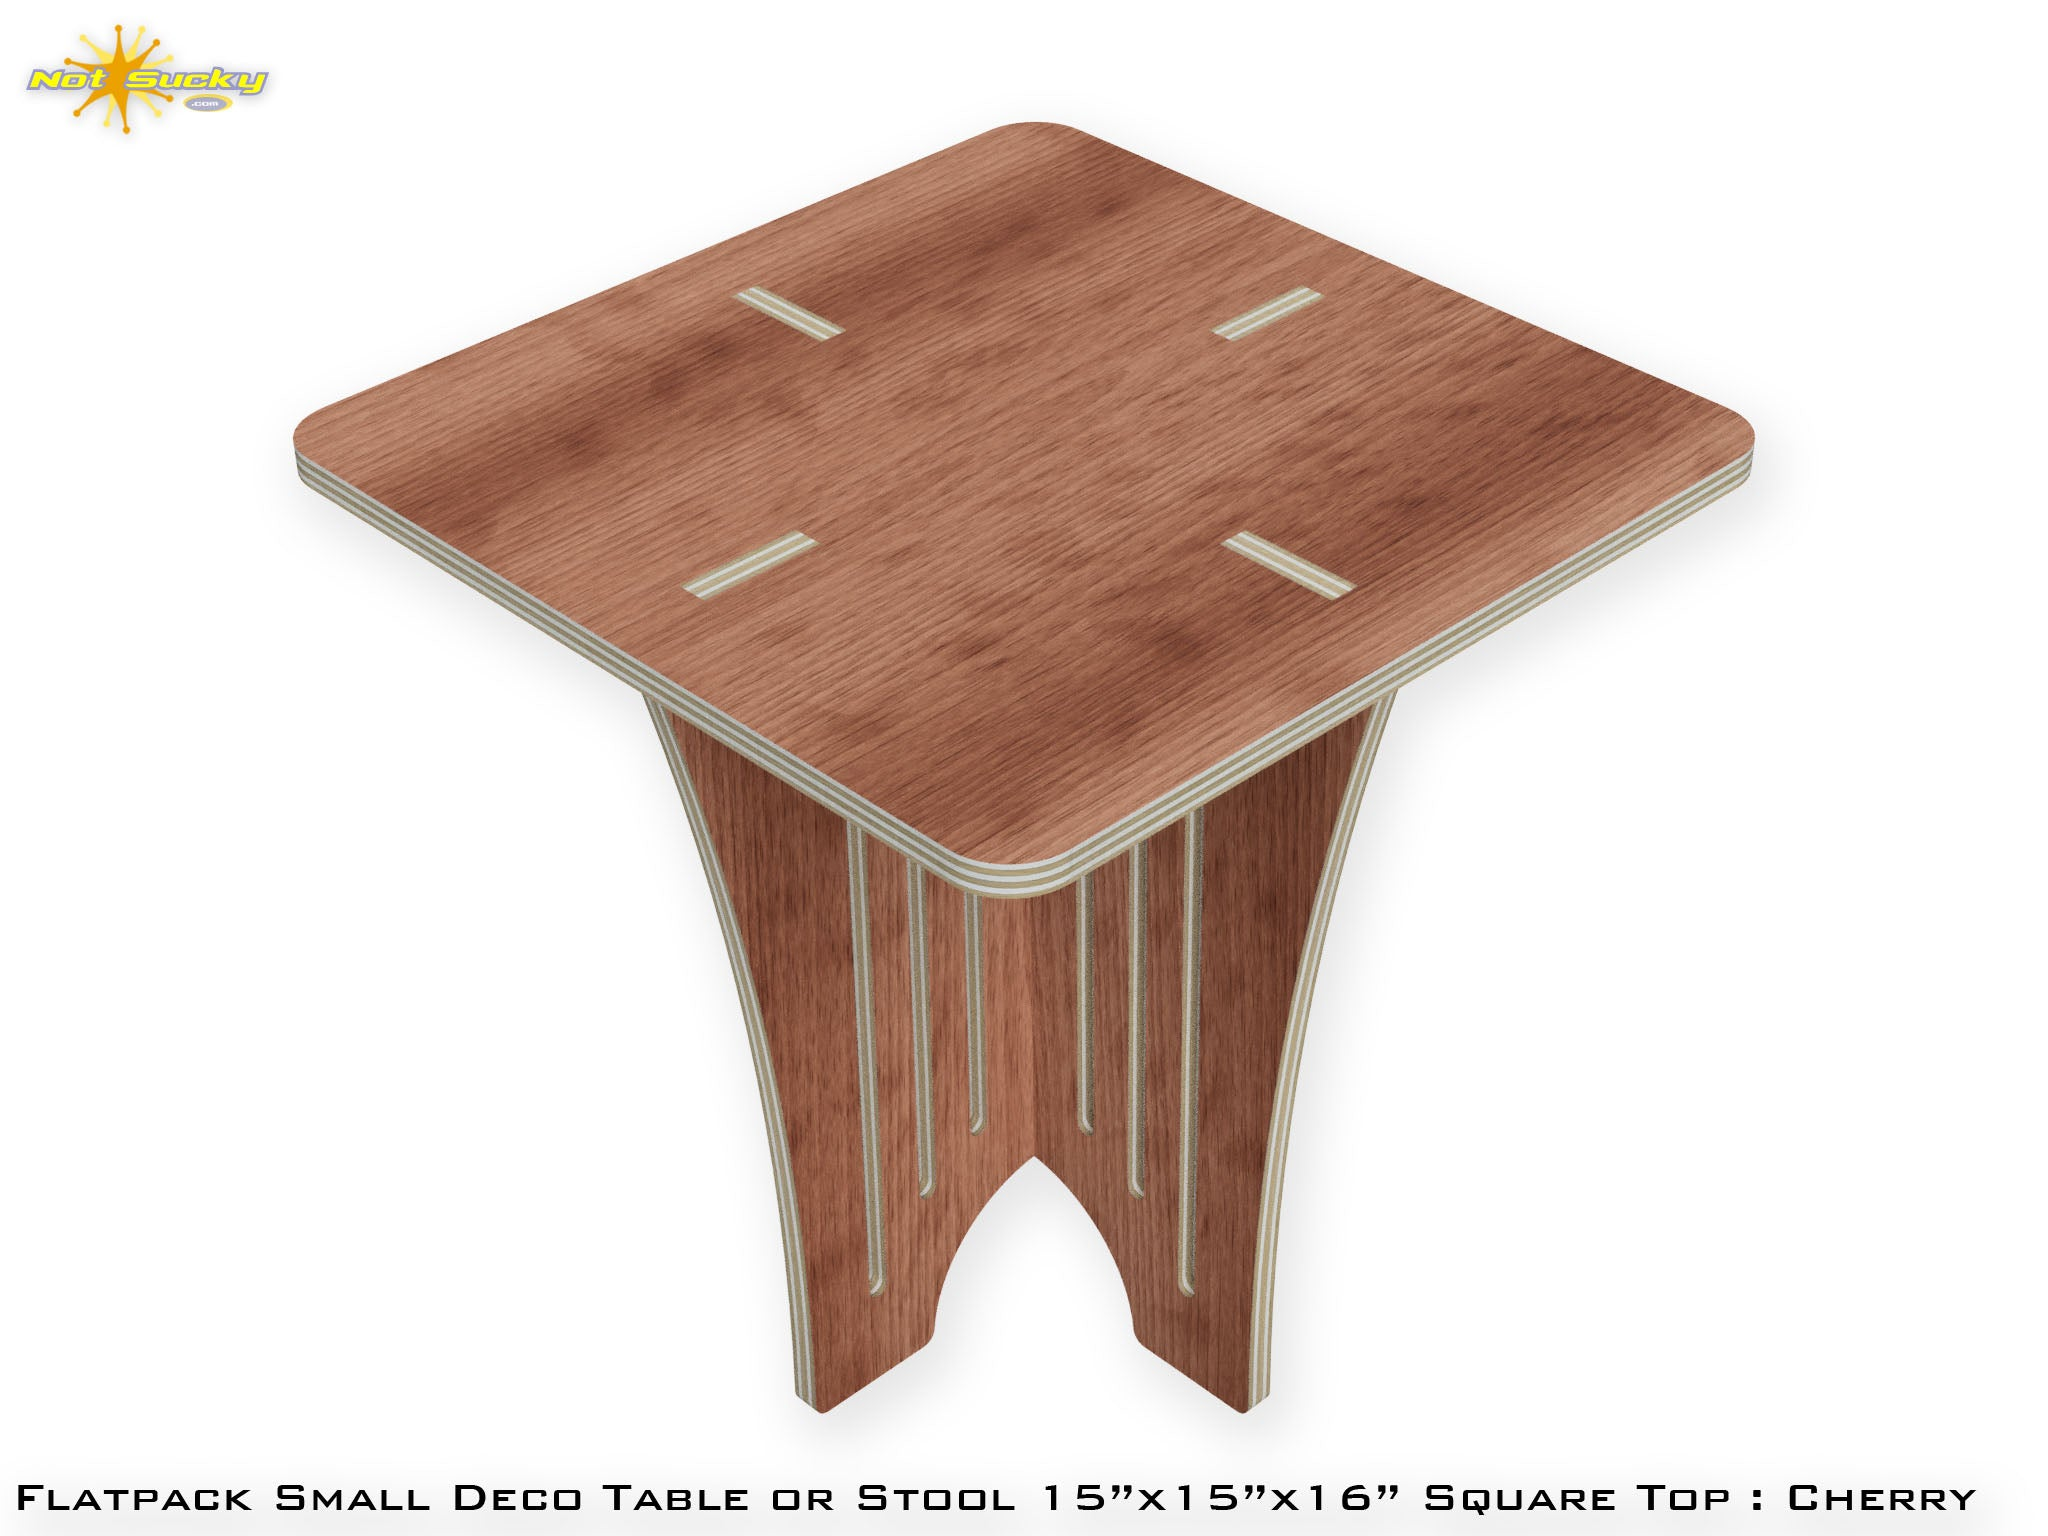 Strange Flat Pack Small Deco Table Or Stool Notsucky Theyellowbook Wood Chair Design Ideas Theyellowbookinfo